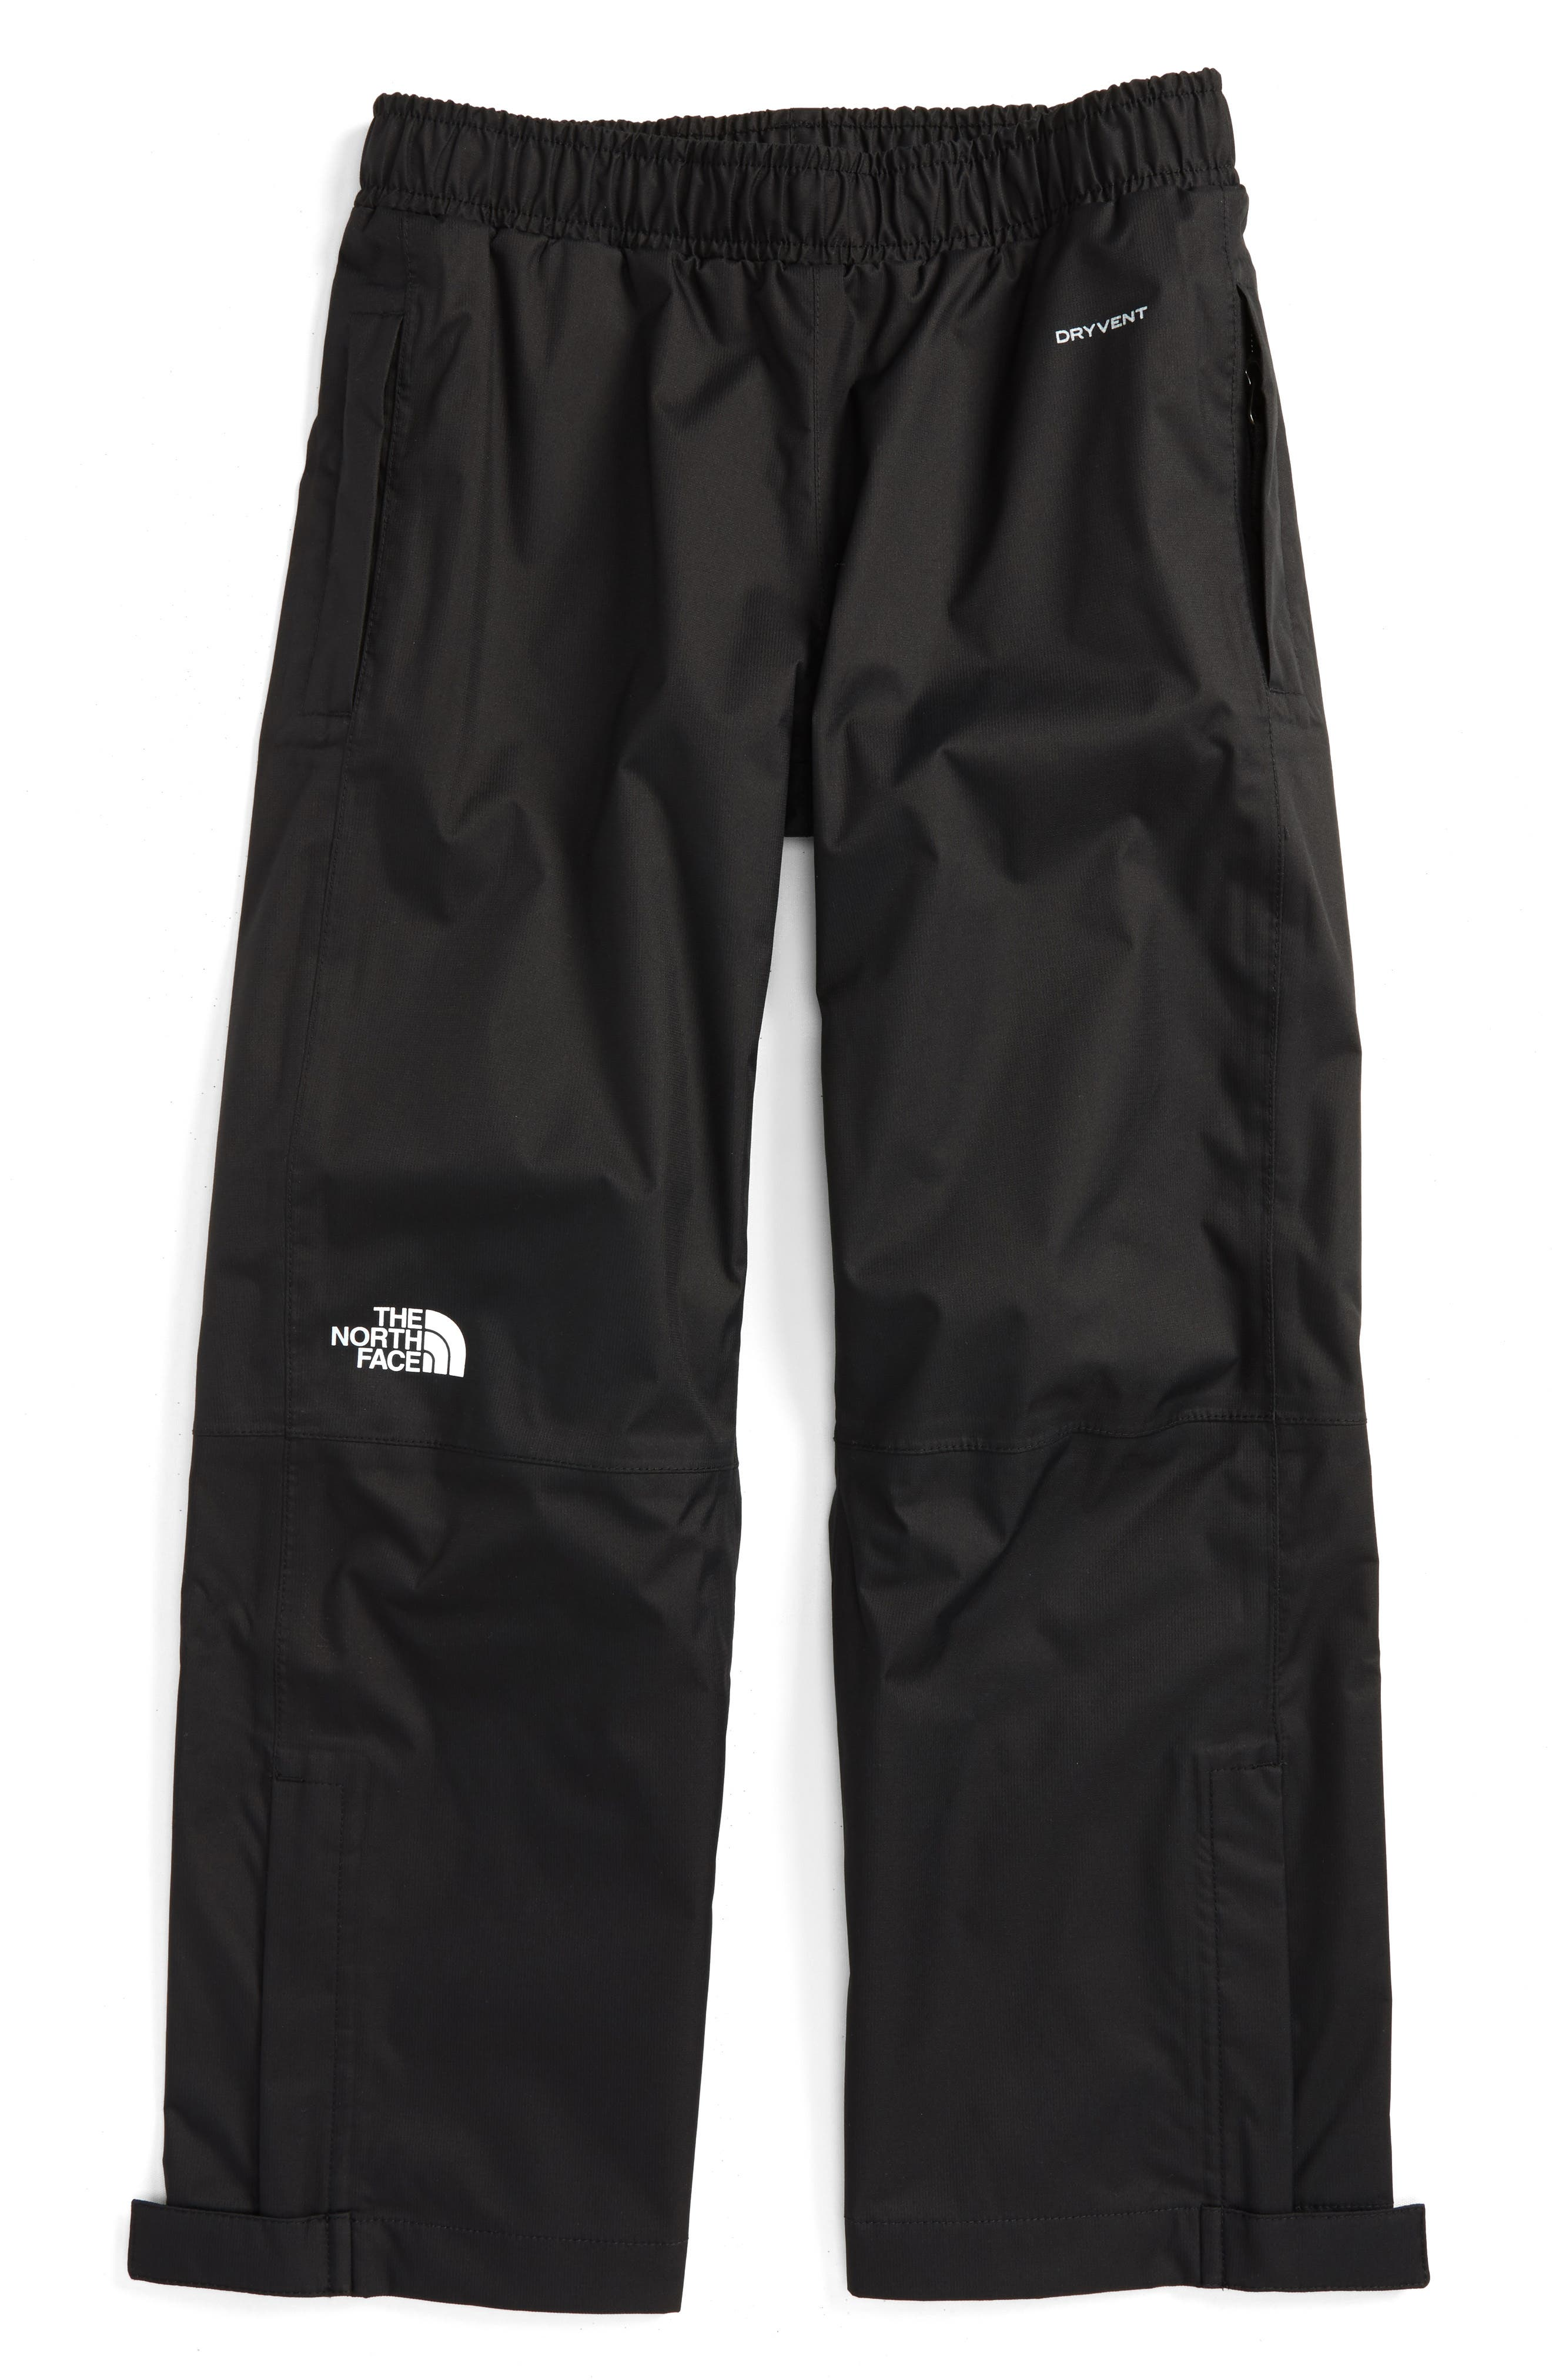 THE NORTH FACE 'Resolve' Waterproof Rain Pants